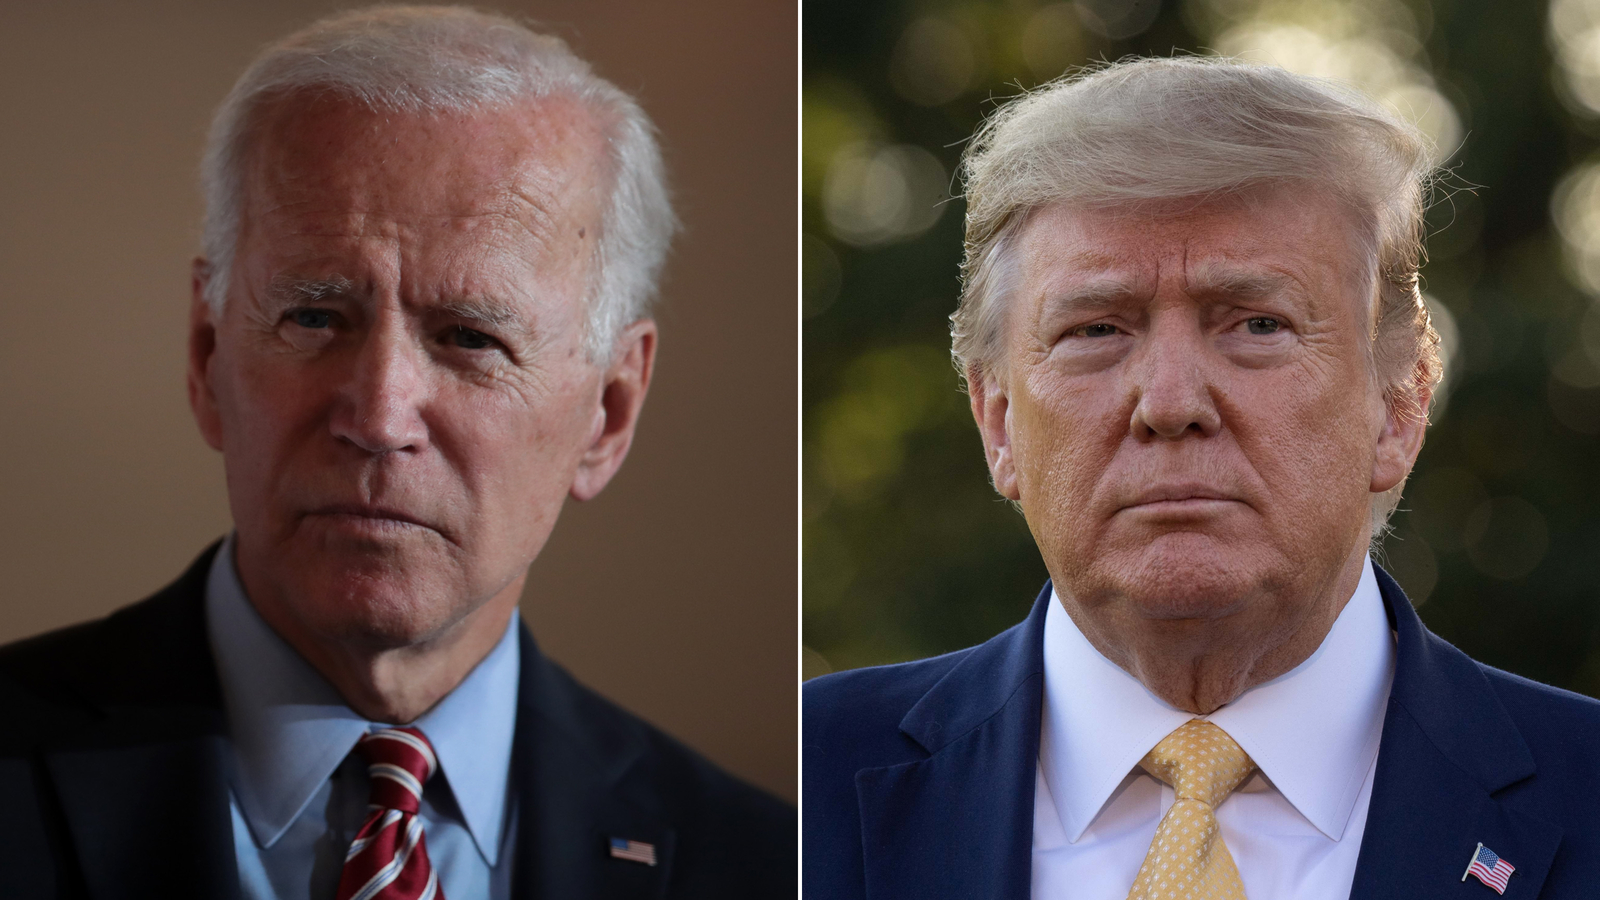 Biden campaign responds to Trump's 'hurt God' attack: 'Biden's faith is at the core of who he is'